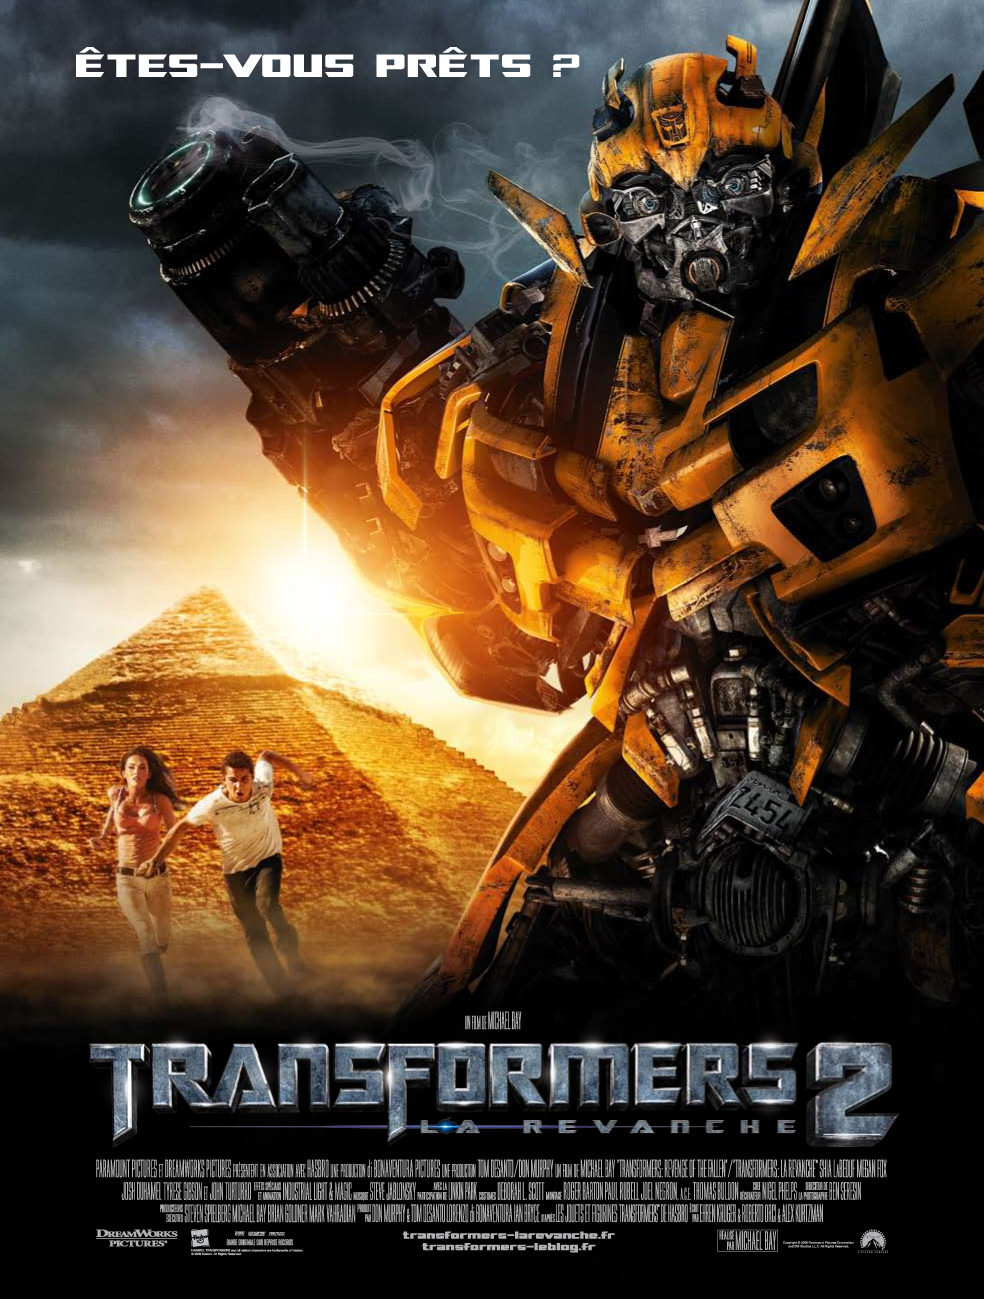 Transformers 2 (Transformers 2: Revenge of the Fallen) (2009) Shia Labeouf